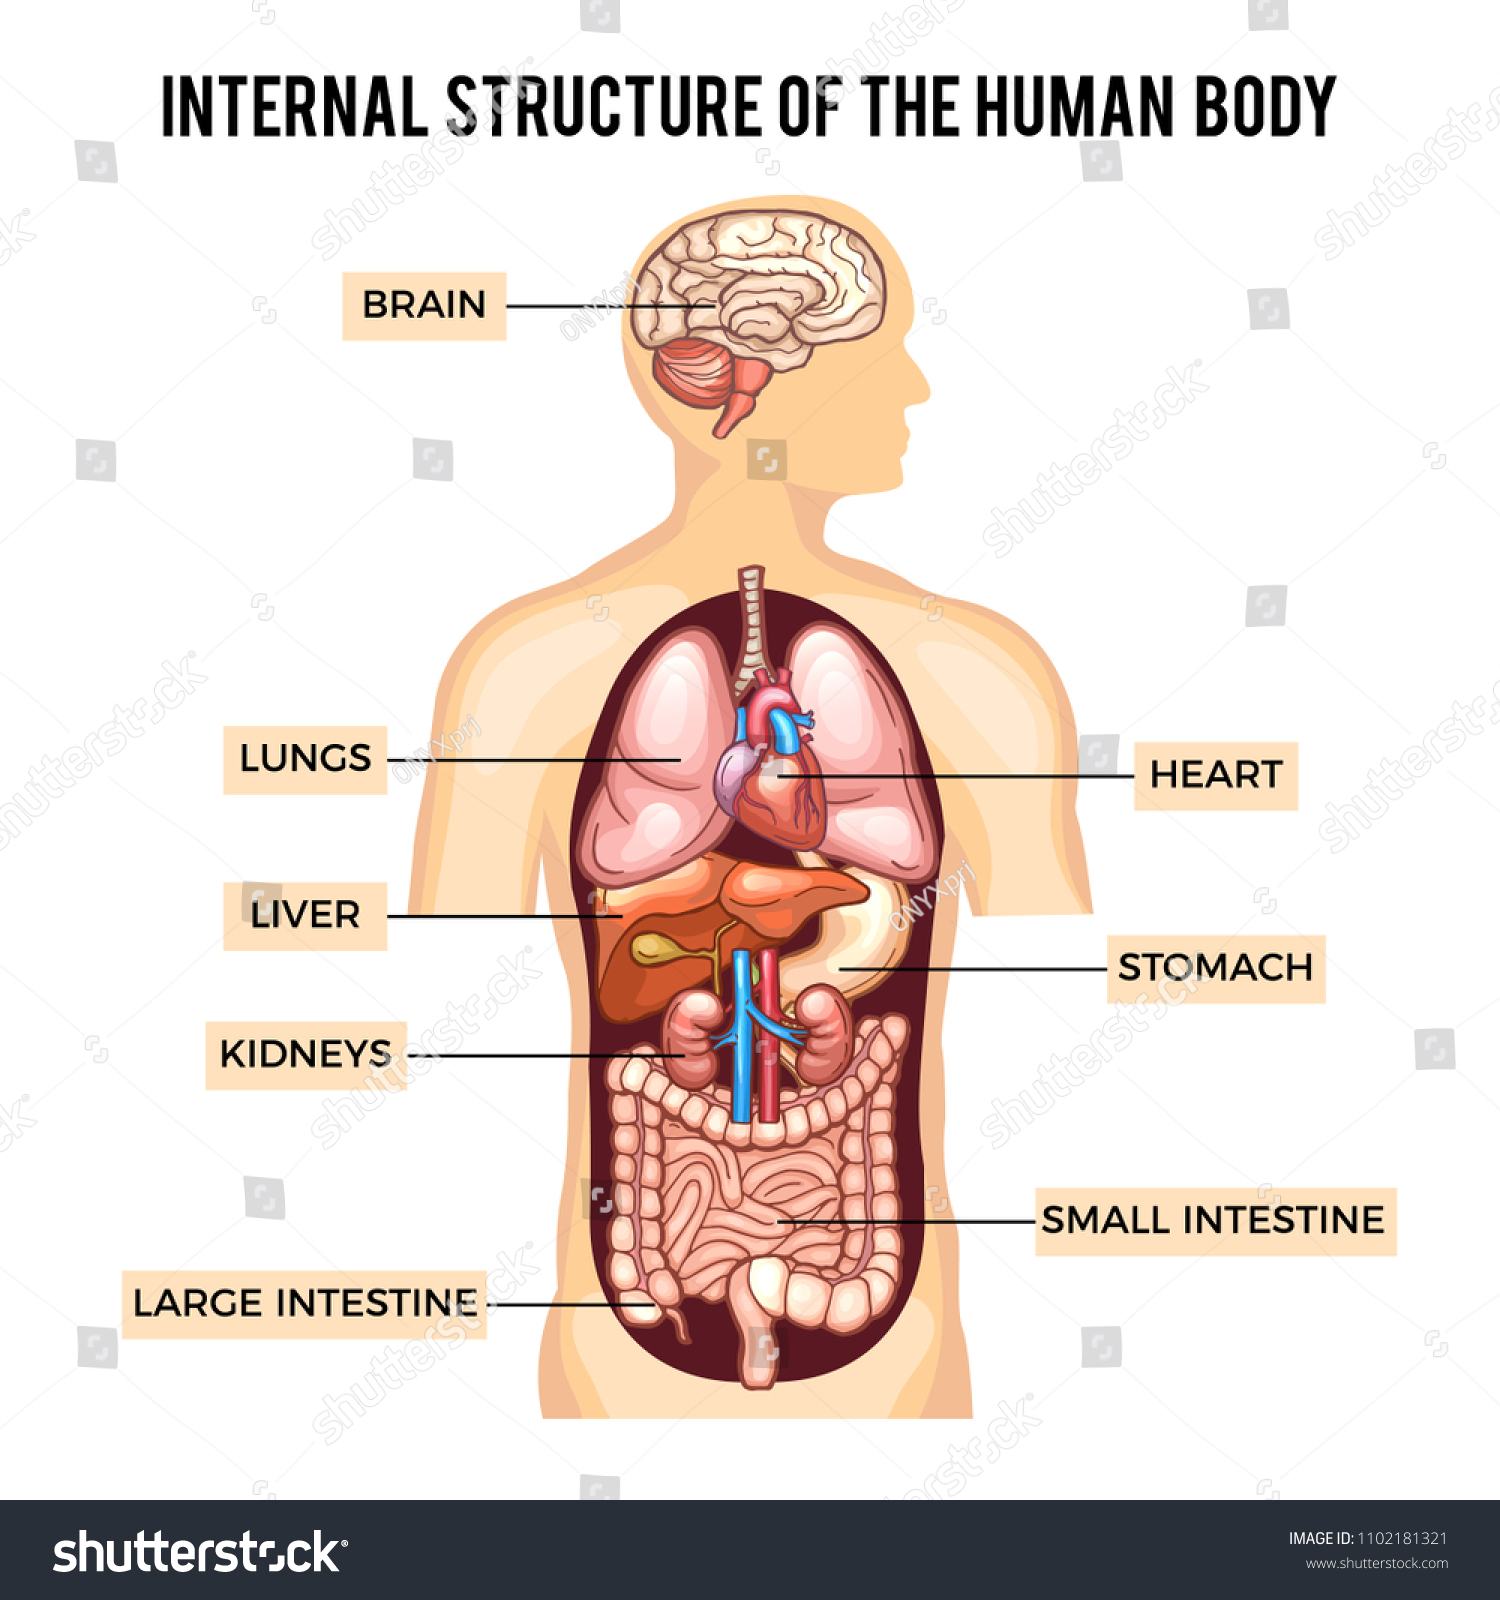 Human Body Organs Systems Infographic Anatomy Stock Illustration